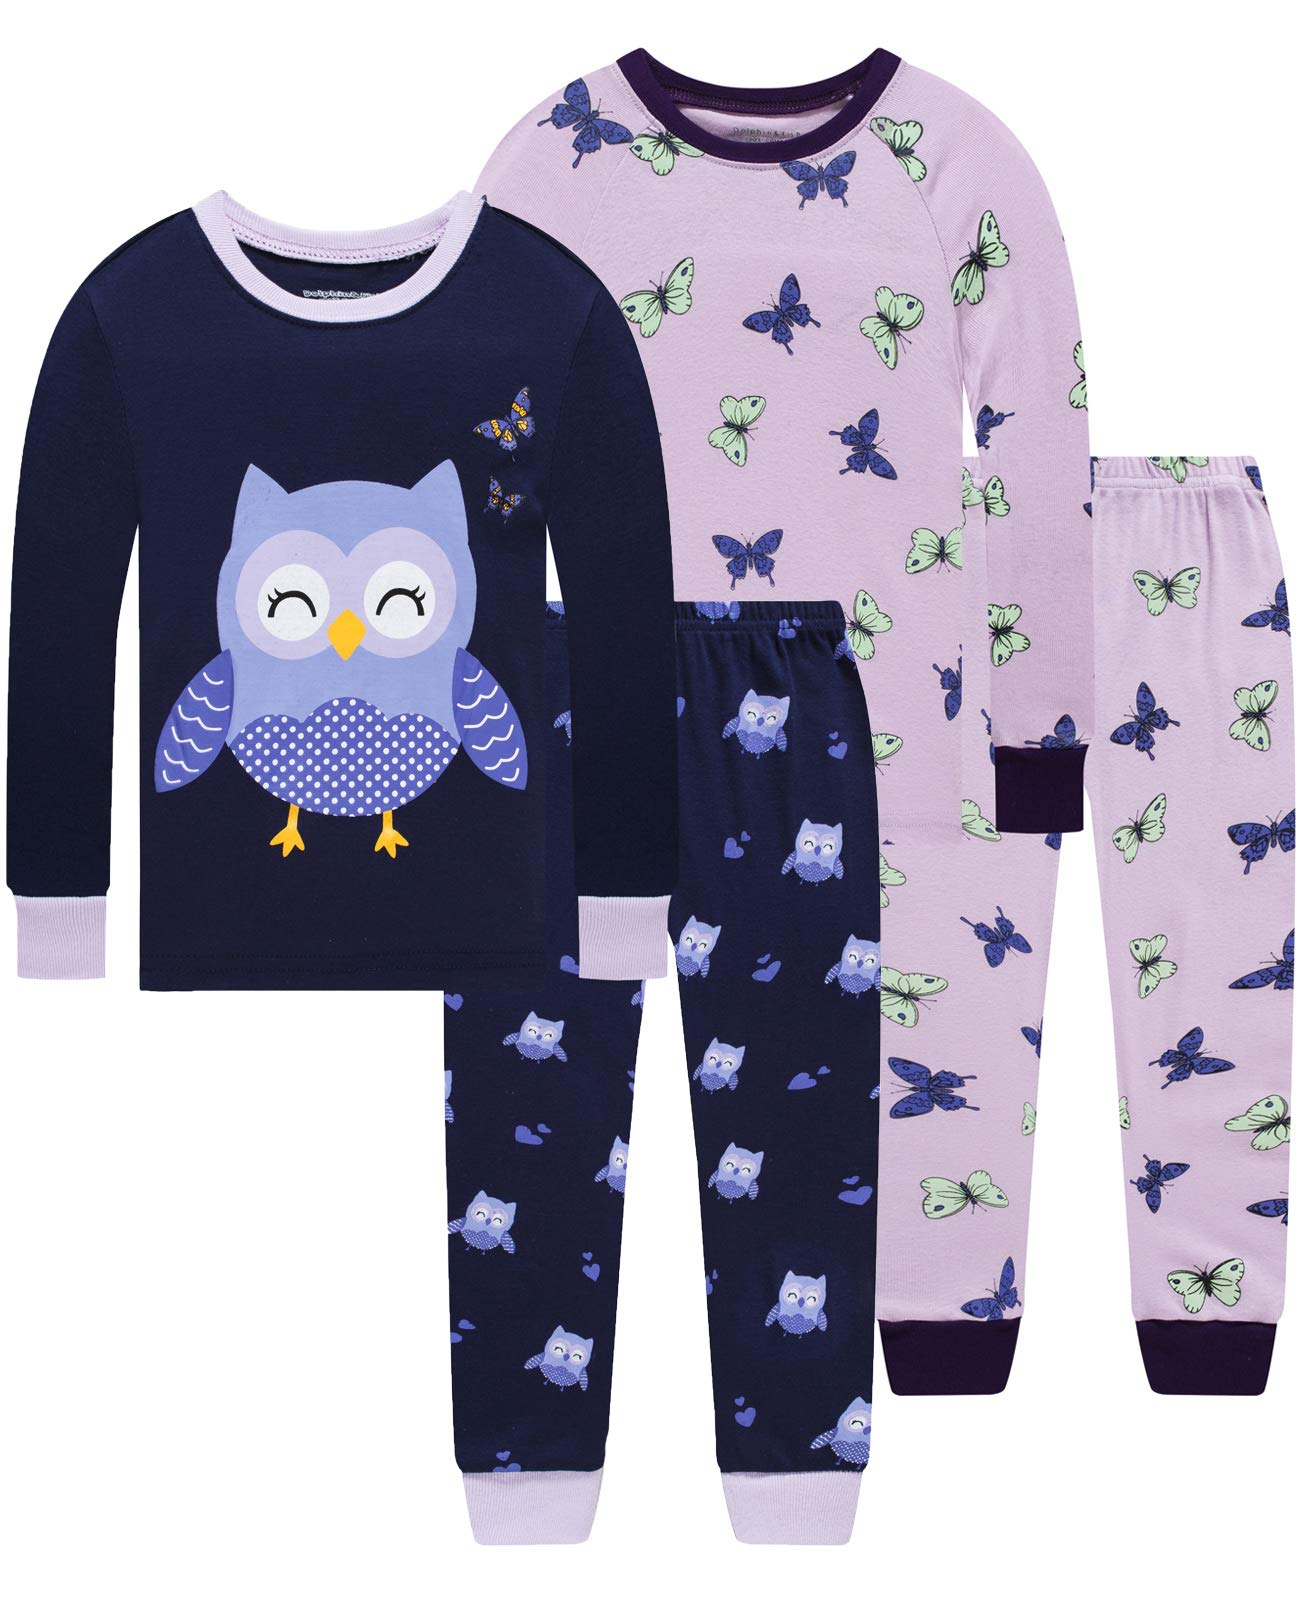 Image of 4 Piece Cotton Butterfly and Owl Pajamas for Girls - See More Designs